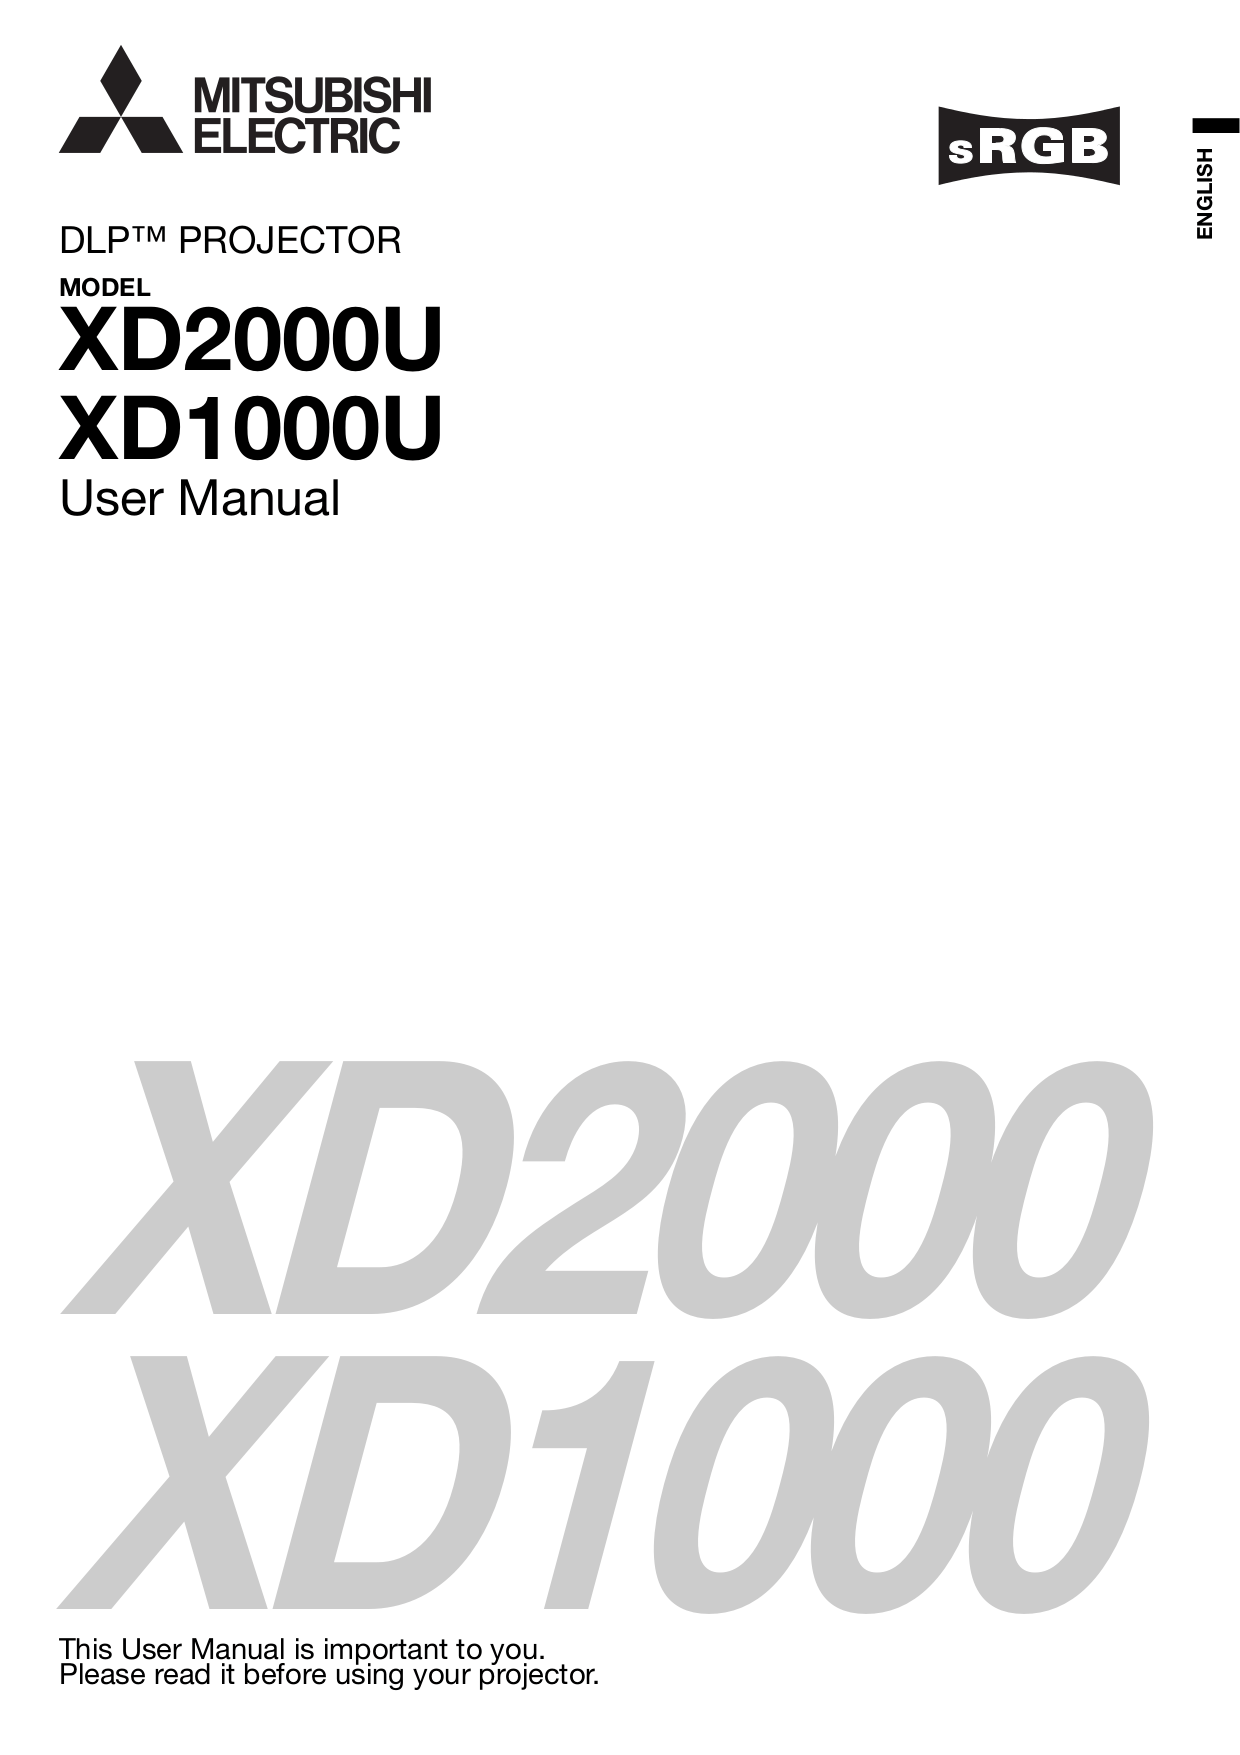 Download free pdf for Mitsubishi XD2000U Projector manual